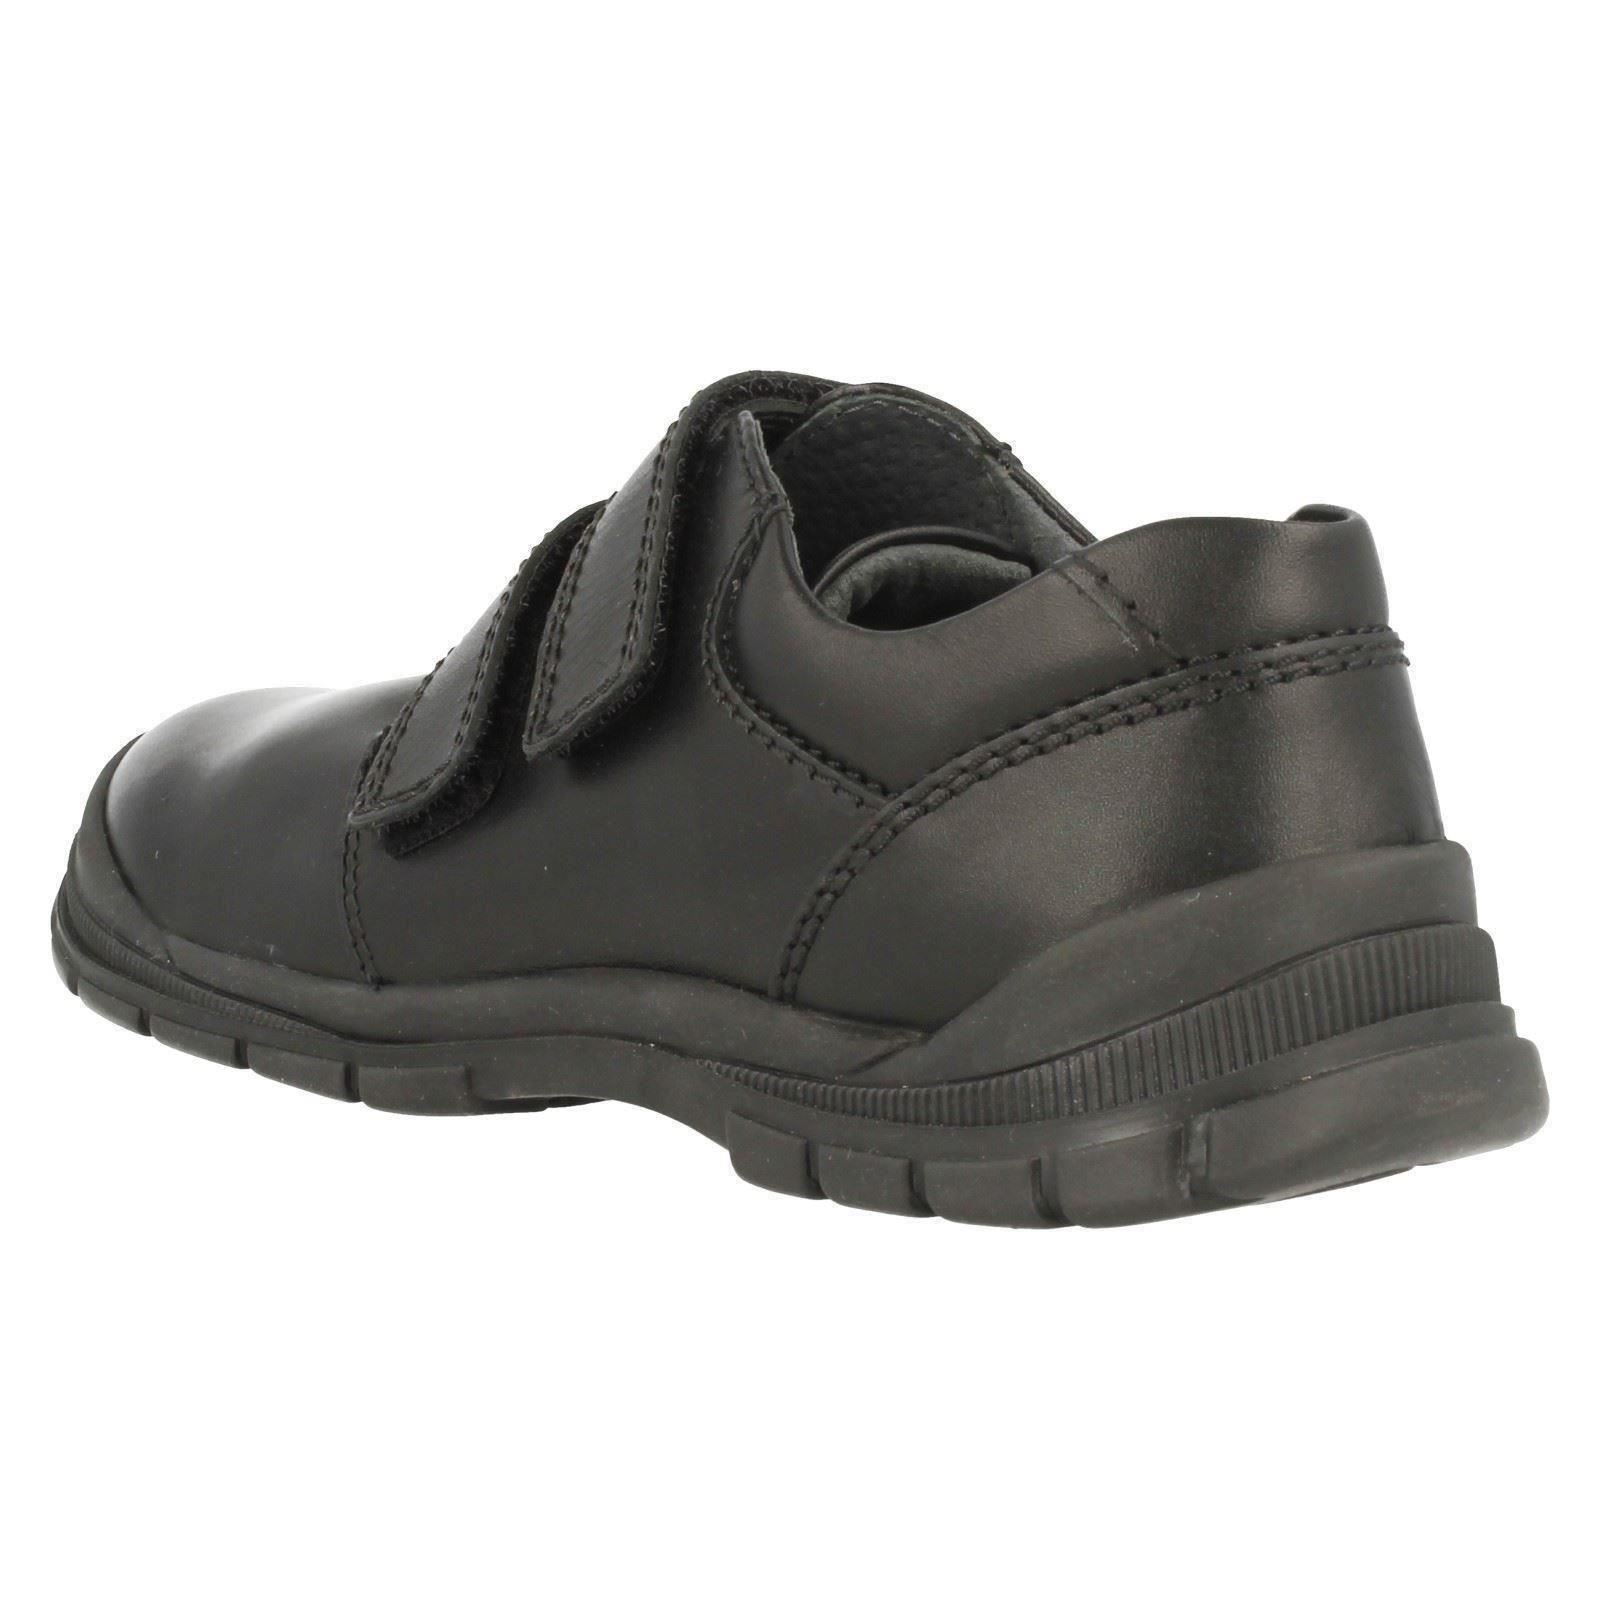 Boys Startrite Scuff Resistant School Shoes /'Engineer/'